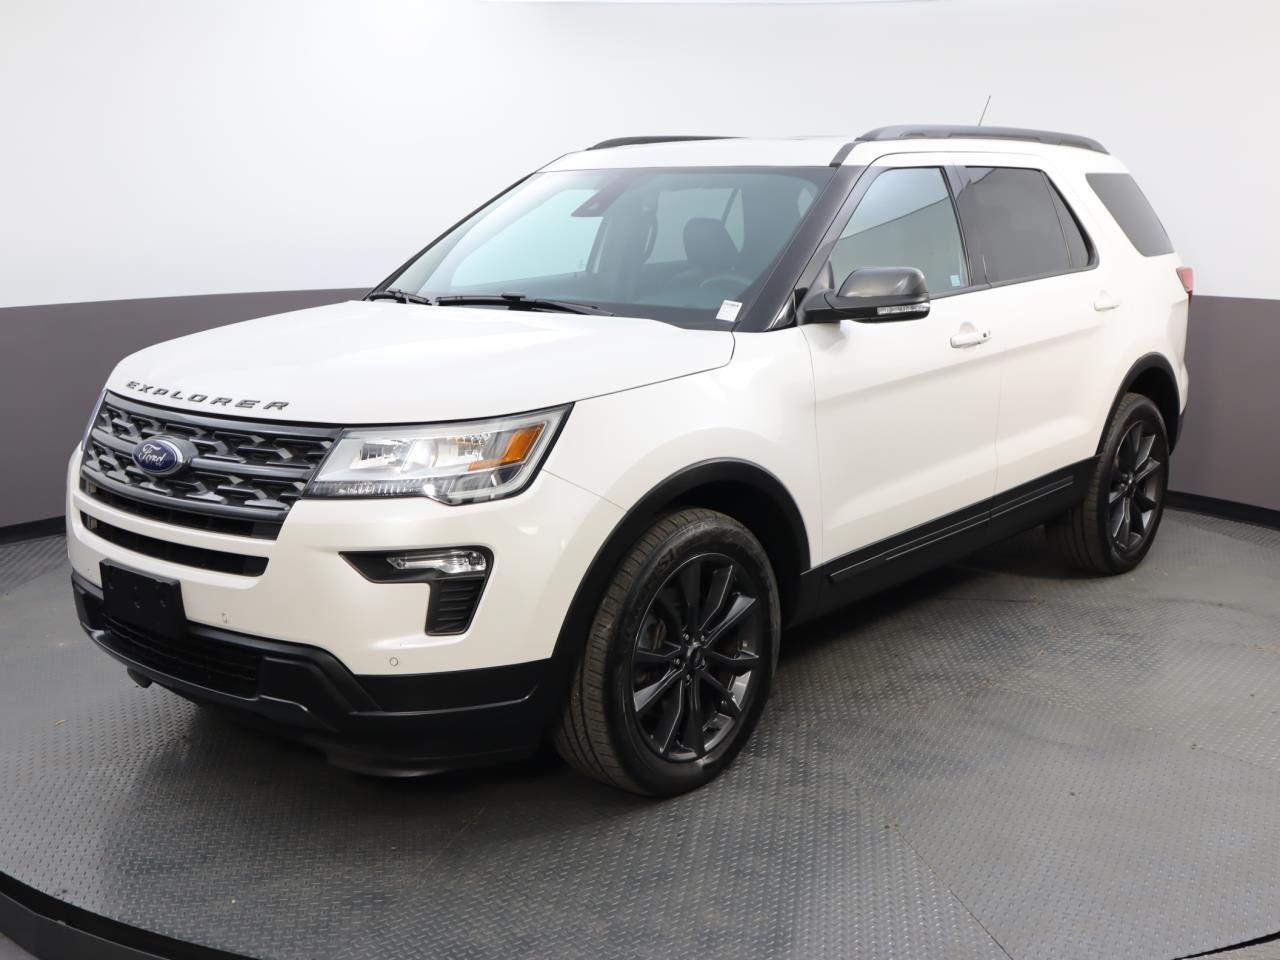 Used FORD EXPLORER 2018 MIAMI XLT